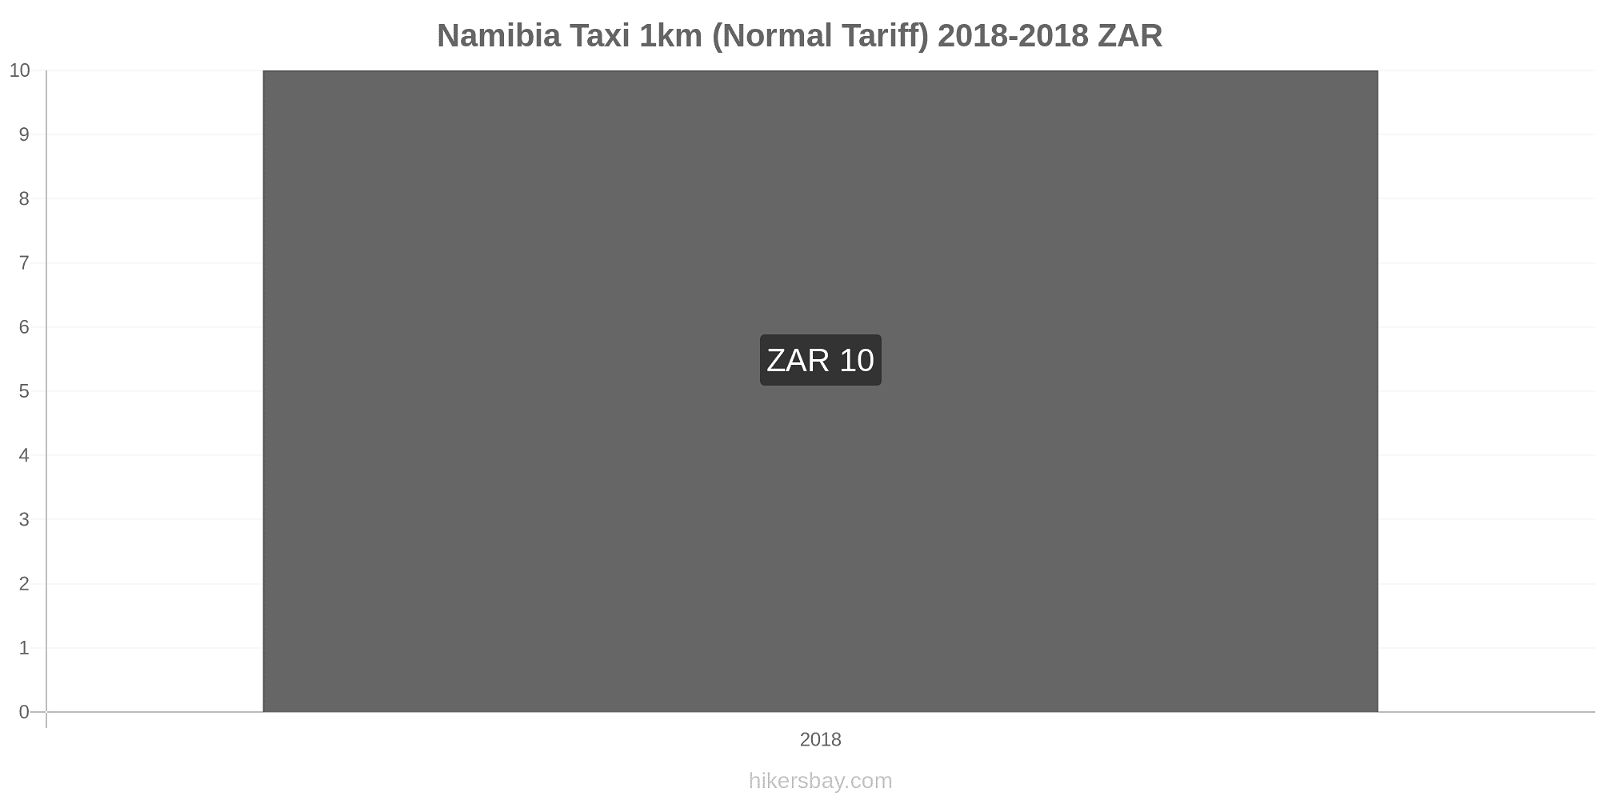 Namibia price changes Taxi 1km (Normal Tariff) hikersbay.com